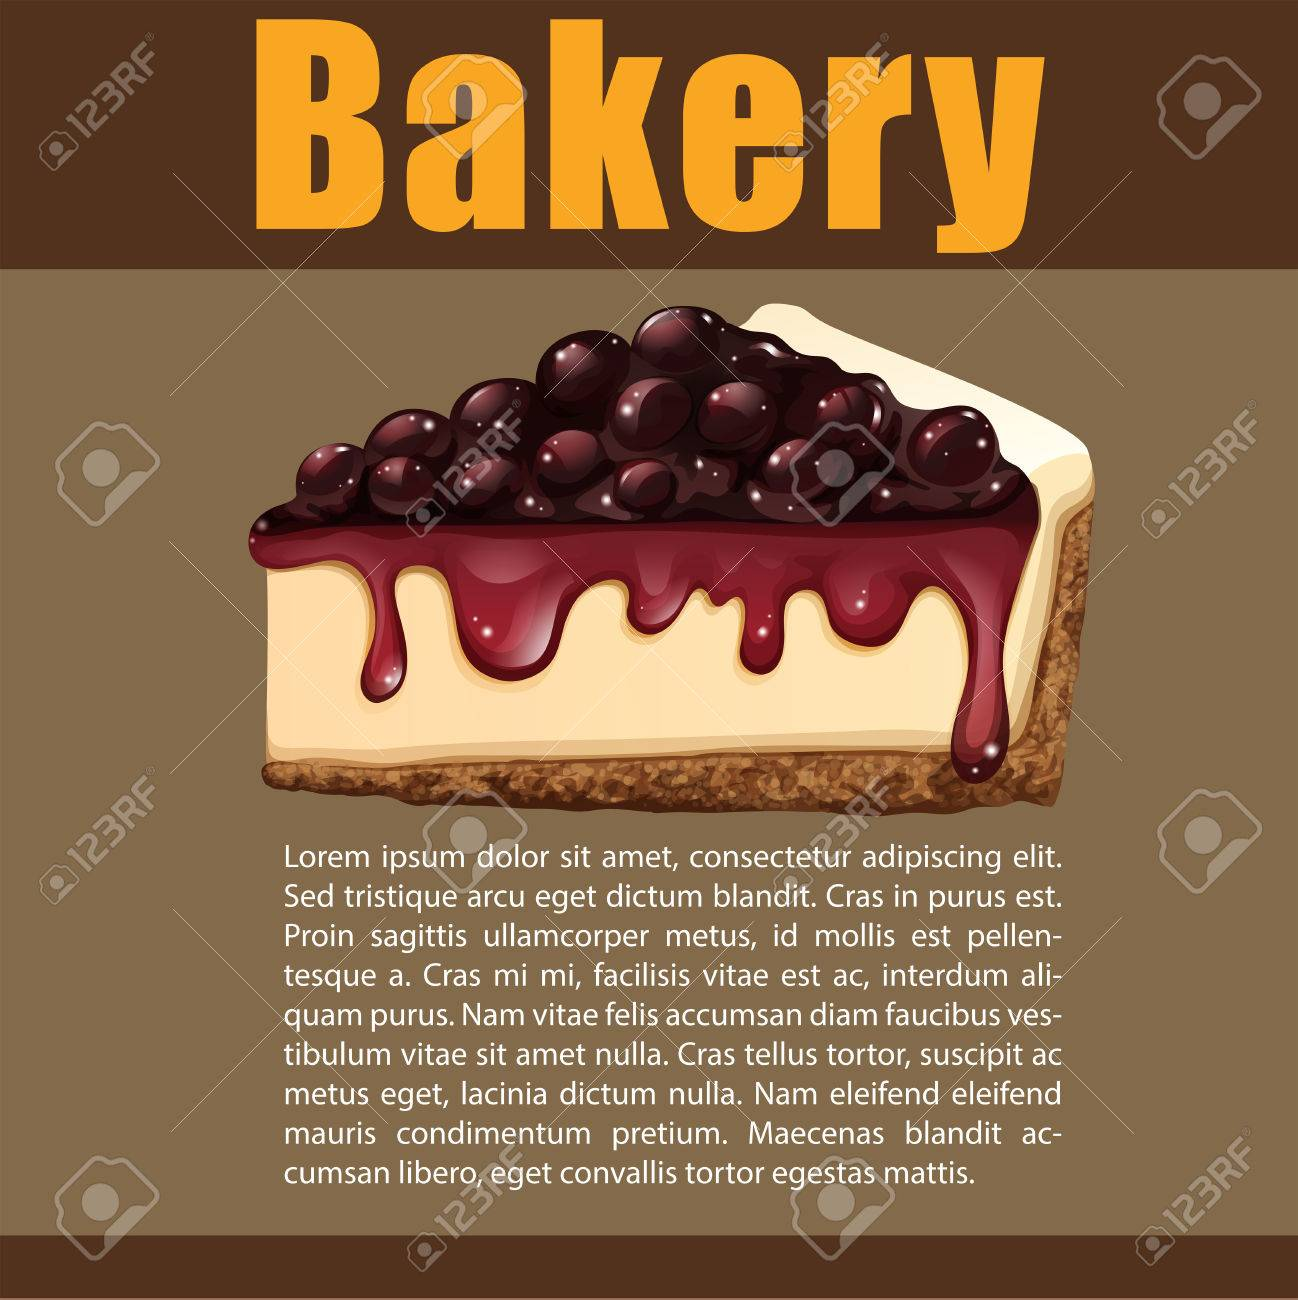 Poster Design With Blueberry Cheesecake Illustration Royalty Free ...